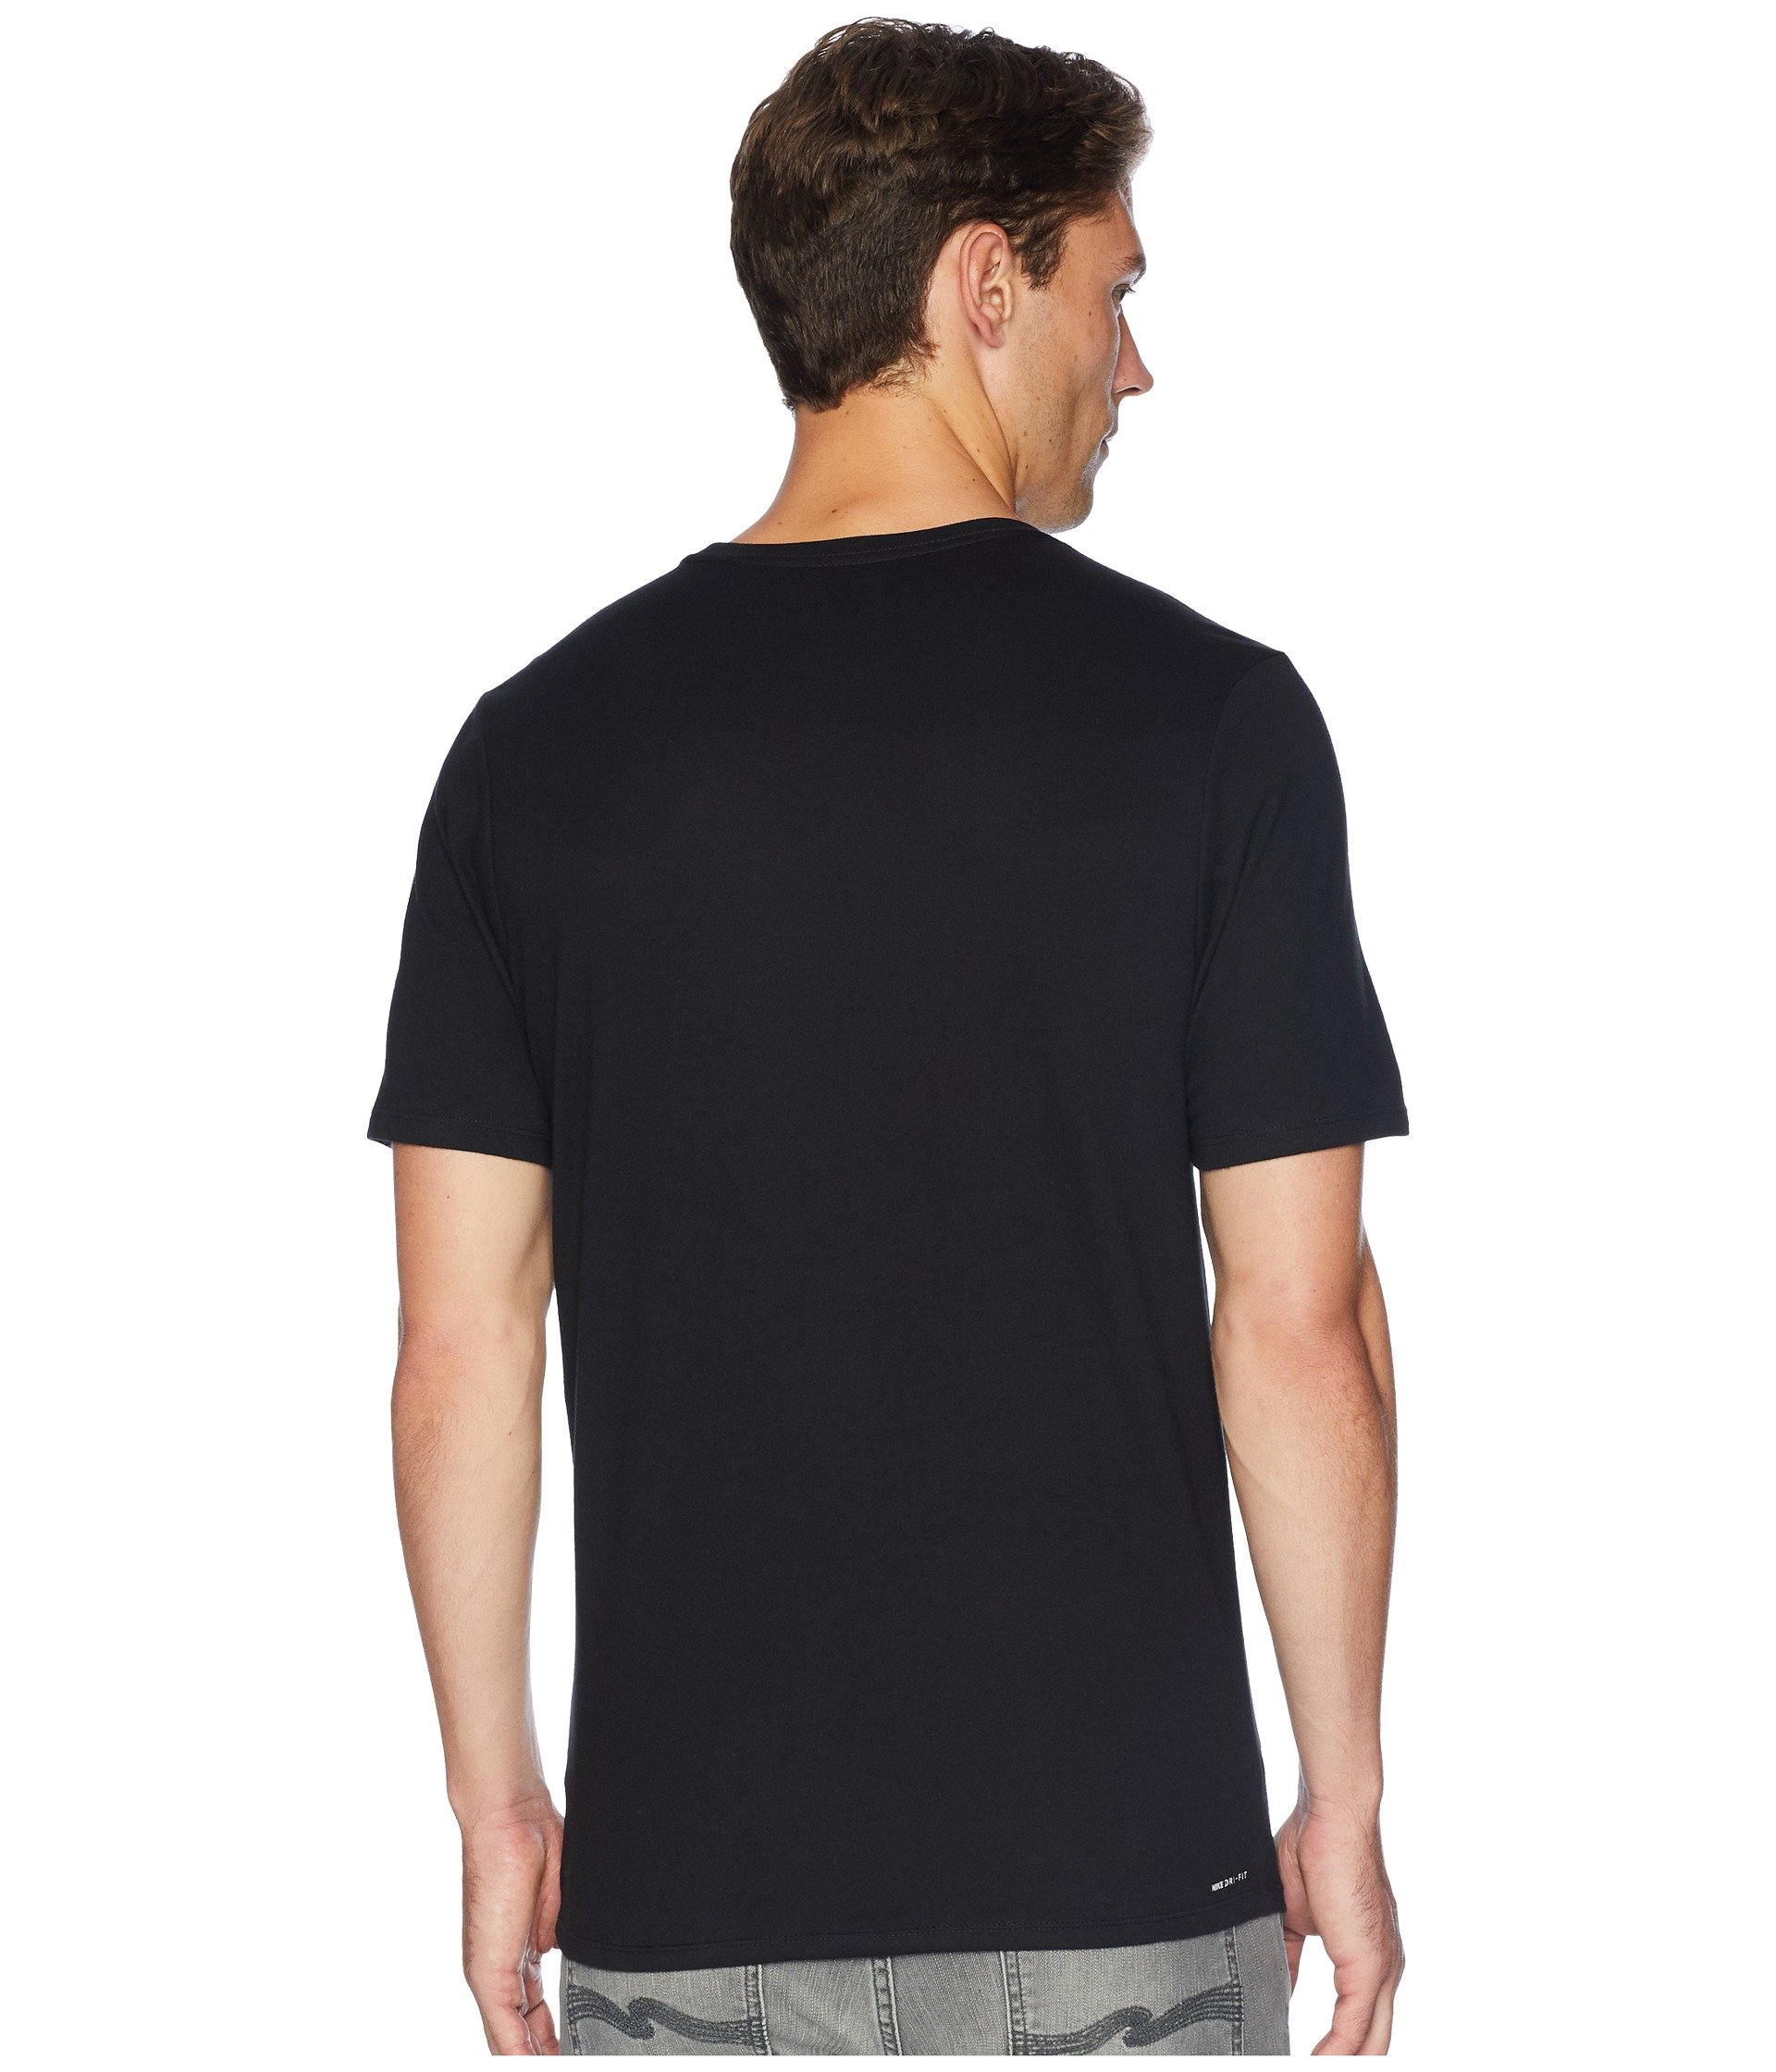 Dri Hurley Black Tee Staple fit FqBpR4w